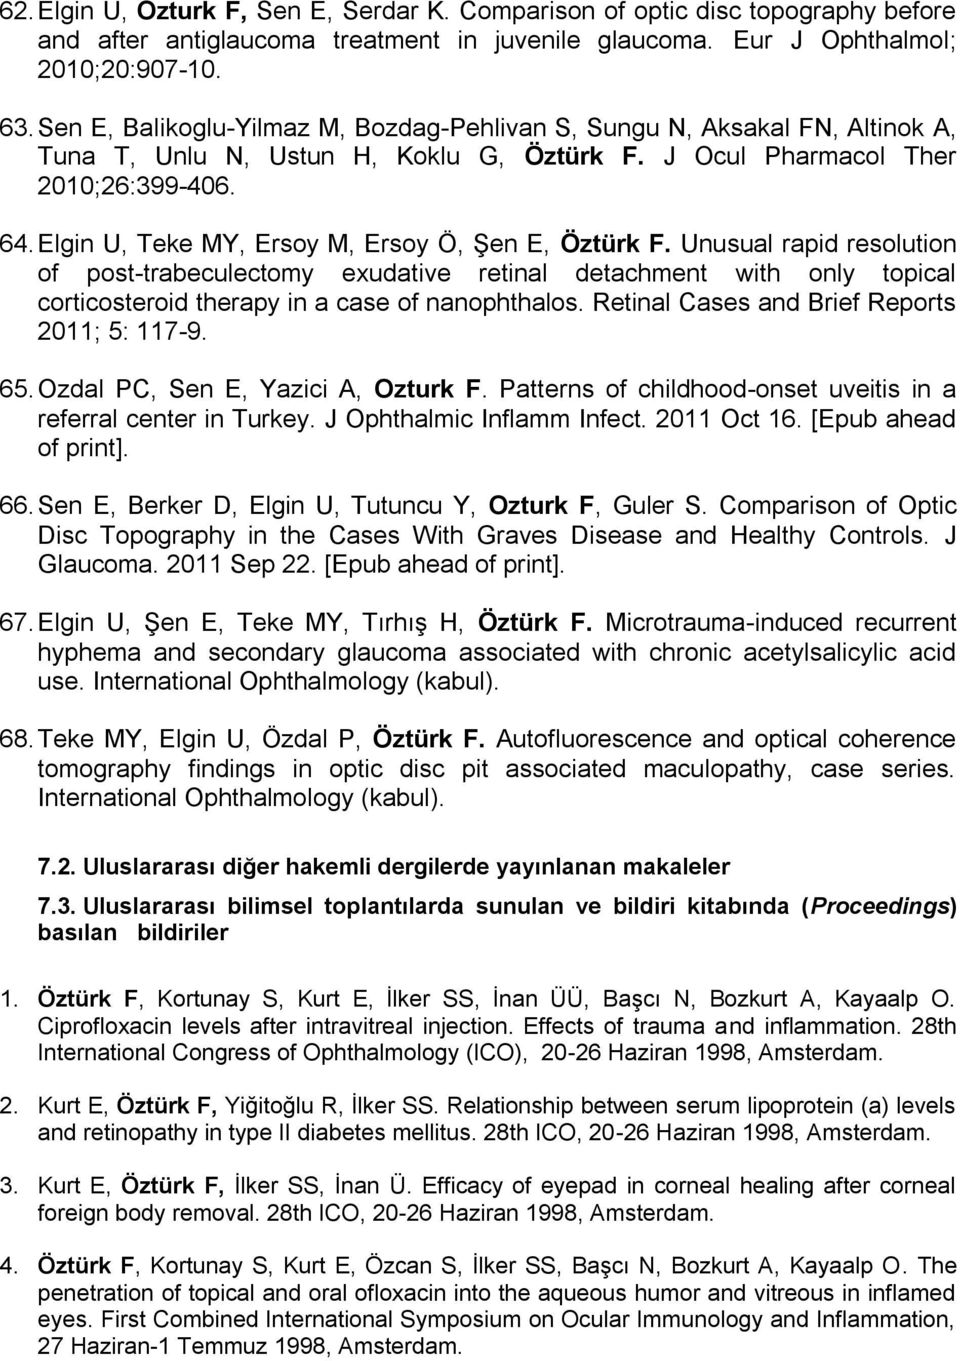 Elgin U, Teke MY, Ersoy M, Ersoy Ö, Şen E, Öztürk F. Unusual rapid resolution of post-trabeculectomy exudative retinal detachment with only topical corticosteroid therapy in a case of nanophthalos.